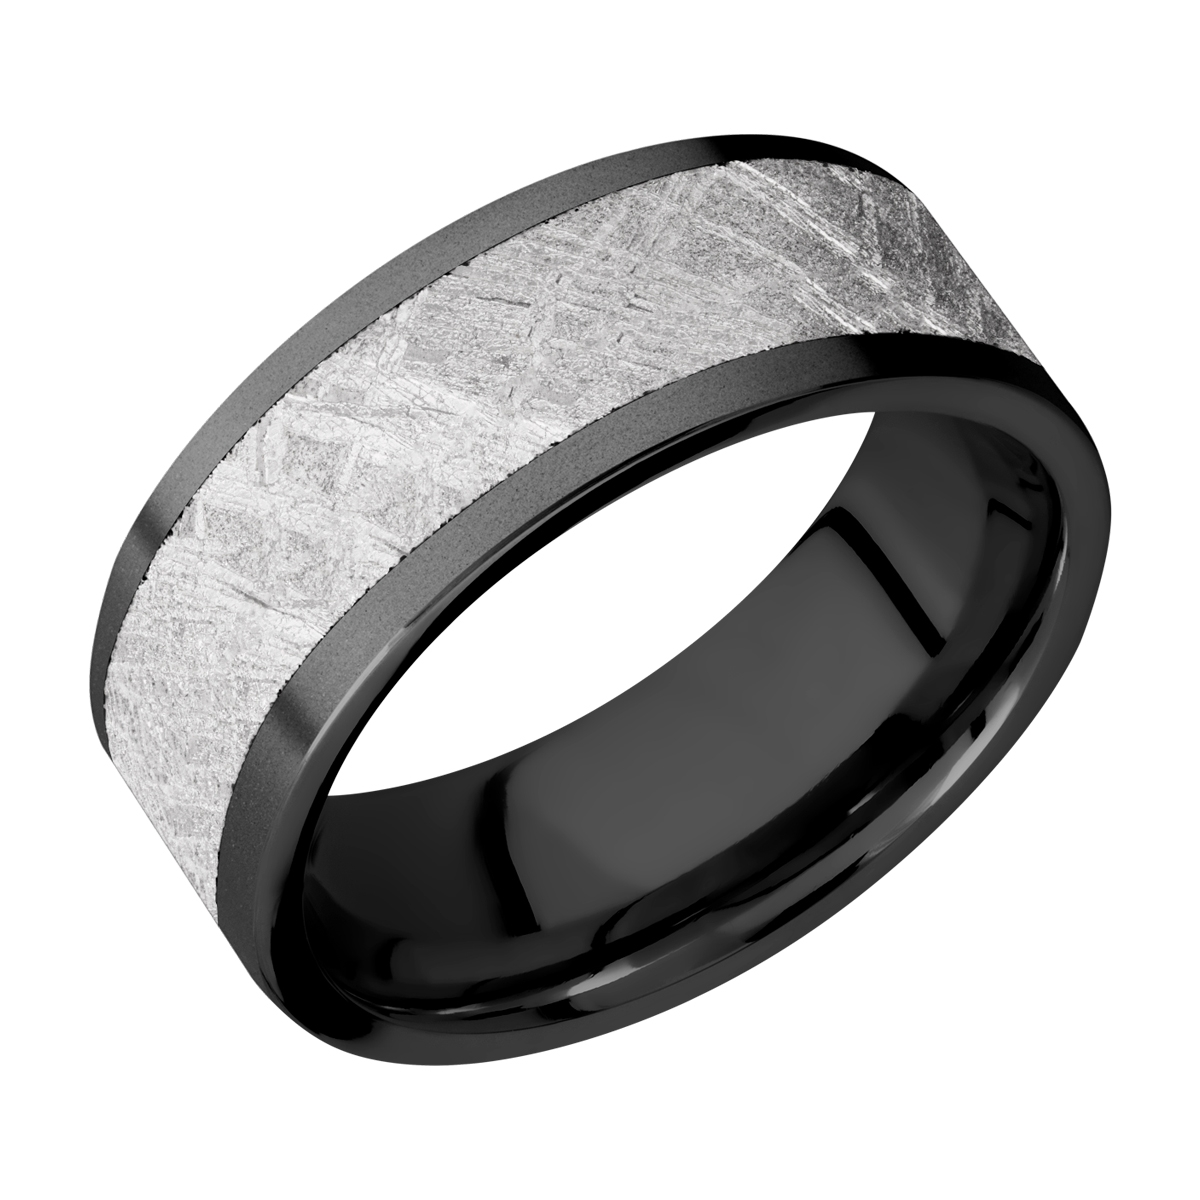 Lashbrook Z8F16/METEORITE Zirconium Wedding Ring or Band